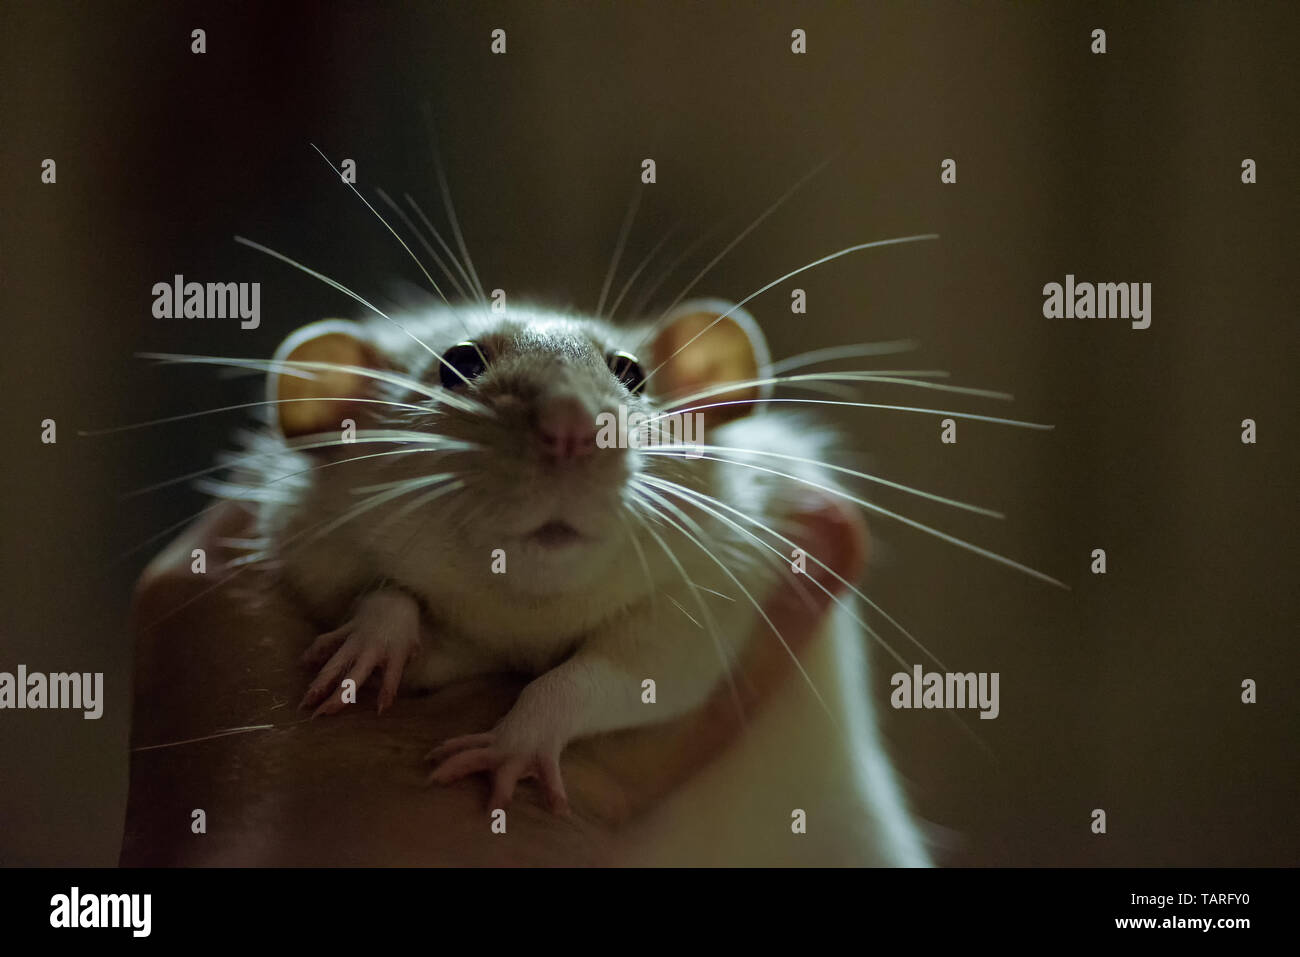 Male Rat High Resolution Stock Photography And Images Alamy